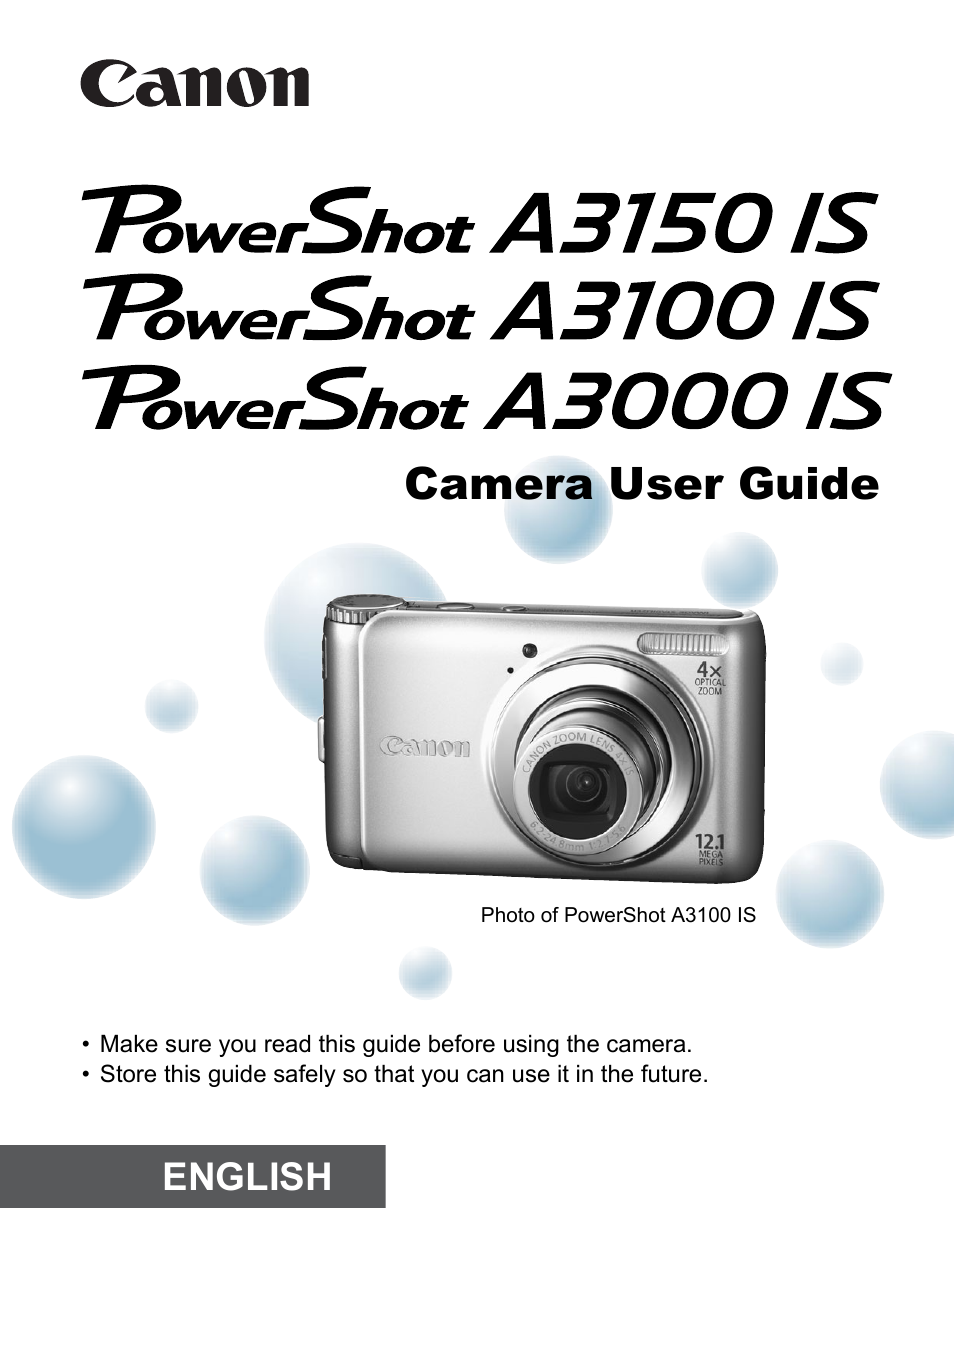 Canon powershot a3000 / a3100 / a3150 is instruction manual.